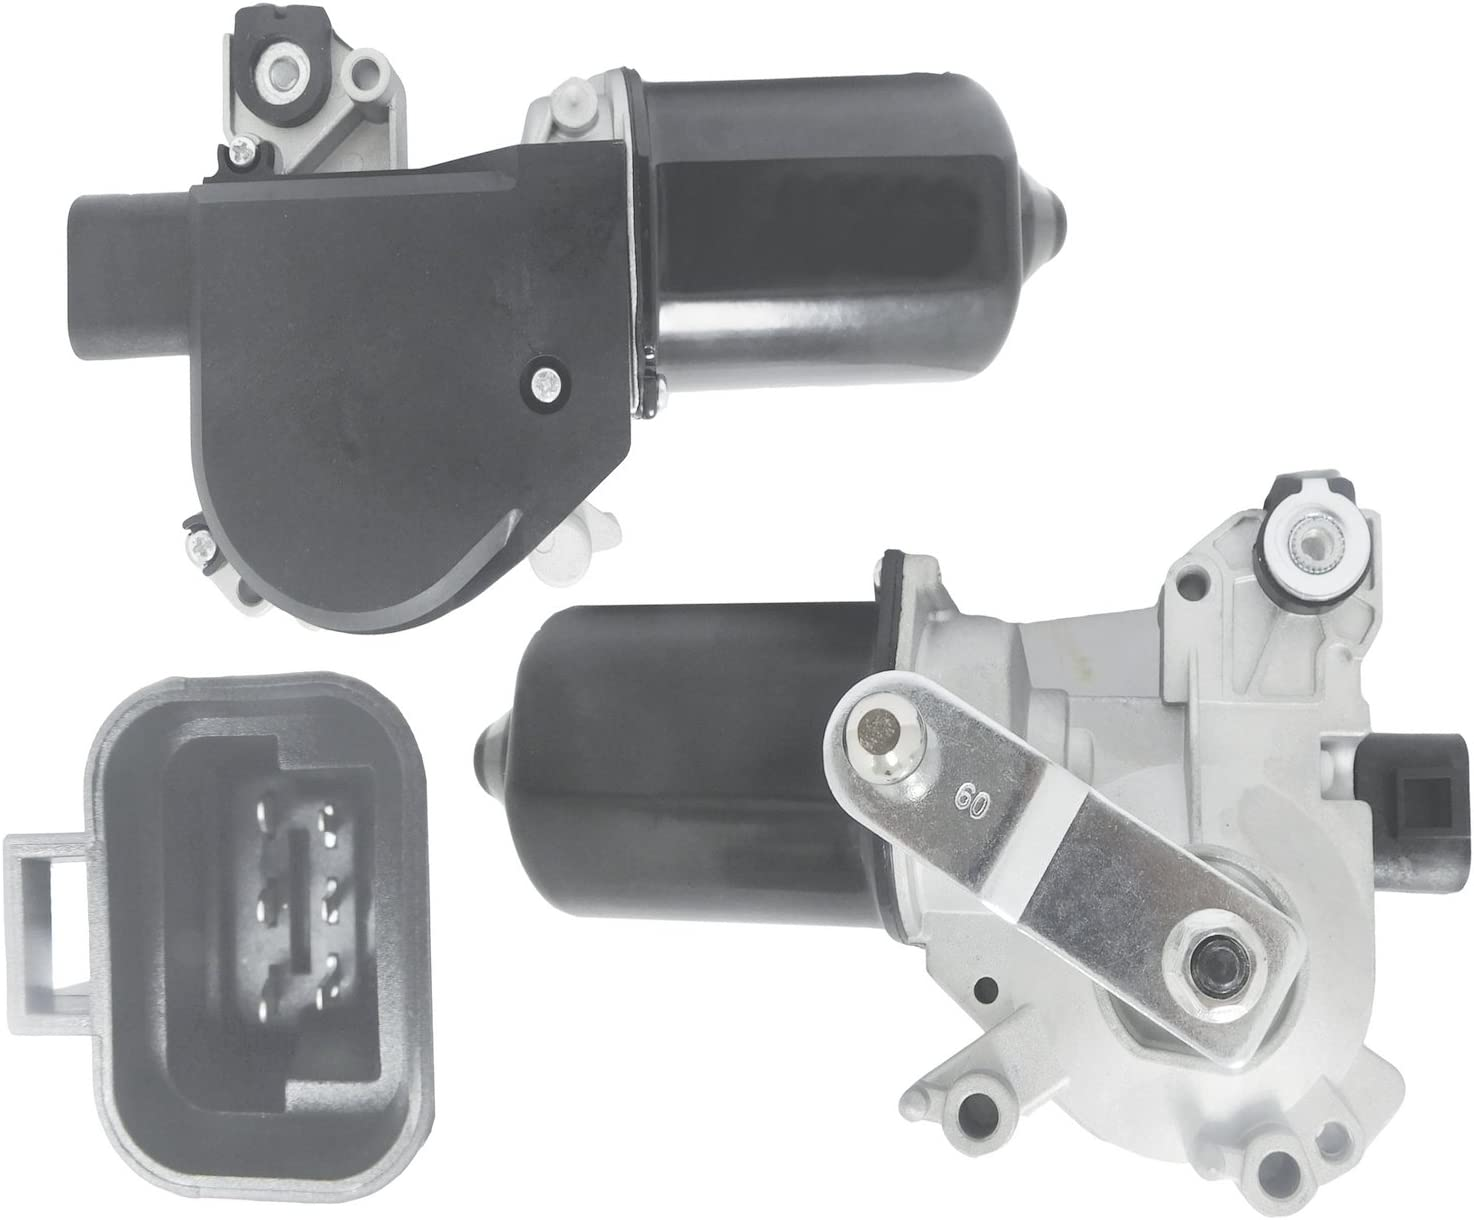 New Front Wiper Motor W//Pulseboard Module For 2003 Chevy Suburban Replaces GM 88958144 Avalanche 1500 2500 /& Tahoe